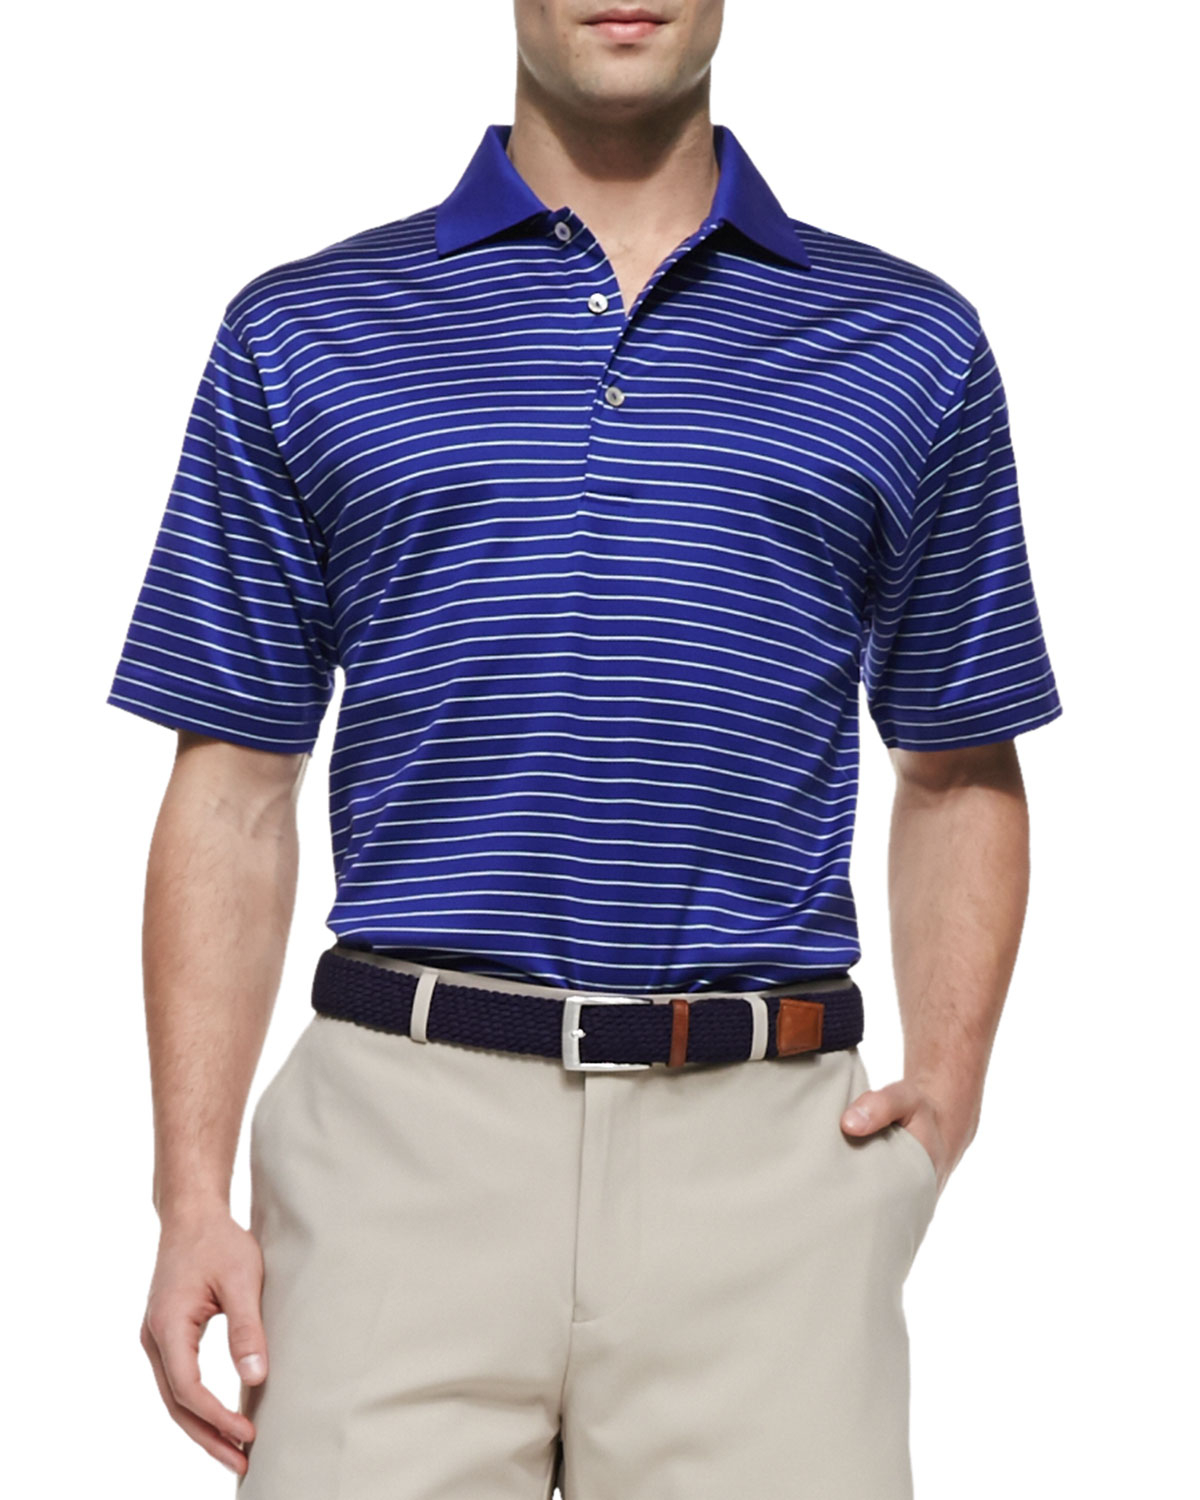 Peter millar mercy stripe polo shirt in blue for men lyst for Peter millar women s golf shirts